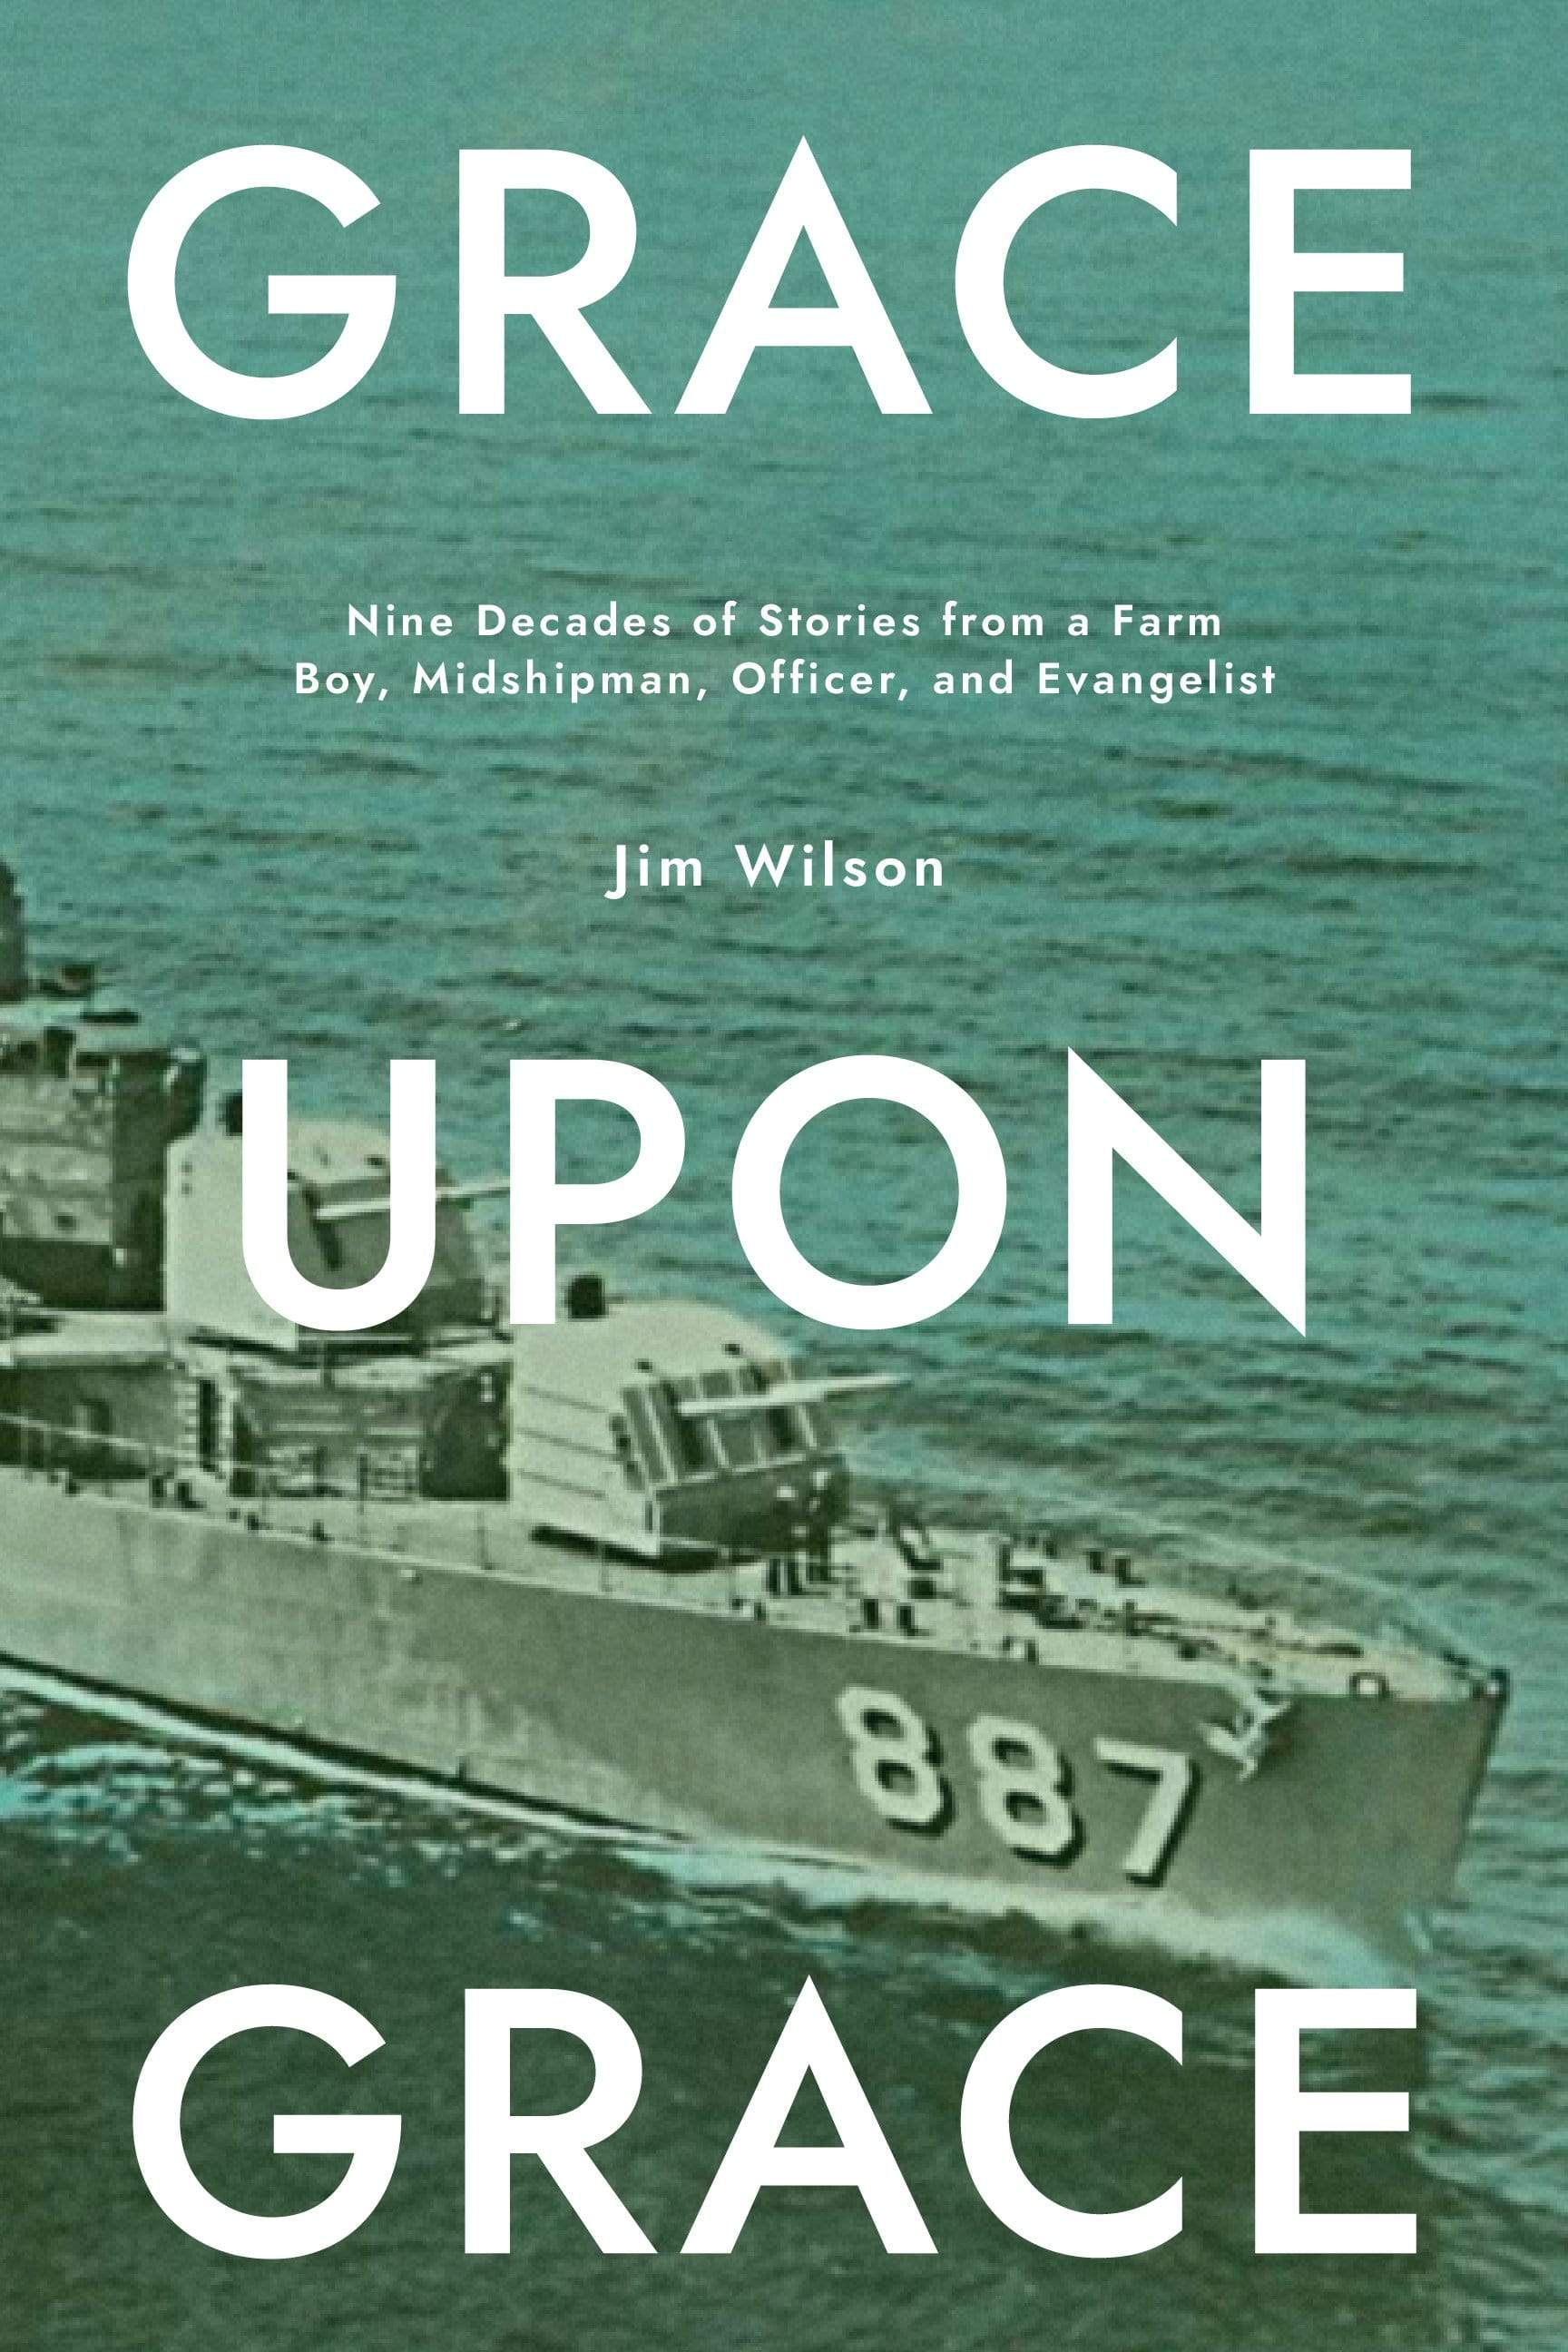 Grace Upon Grace: Nine Decades of Stories from a Farm Boy, Midshipman, Officer, and Evangelist